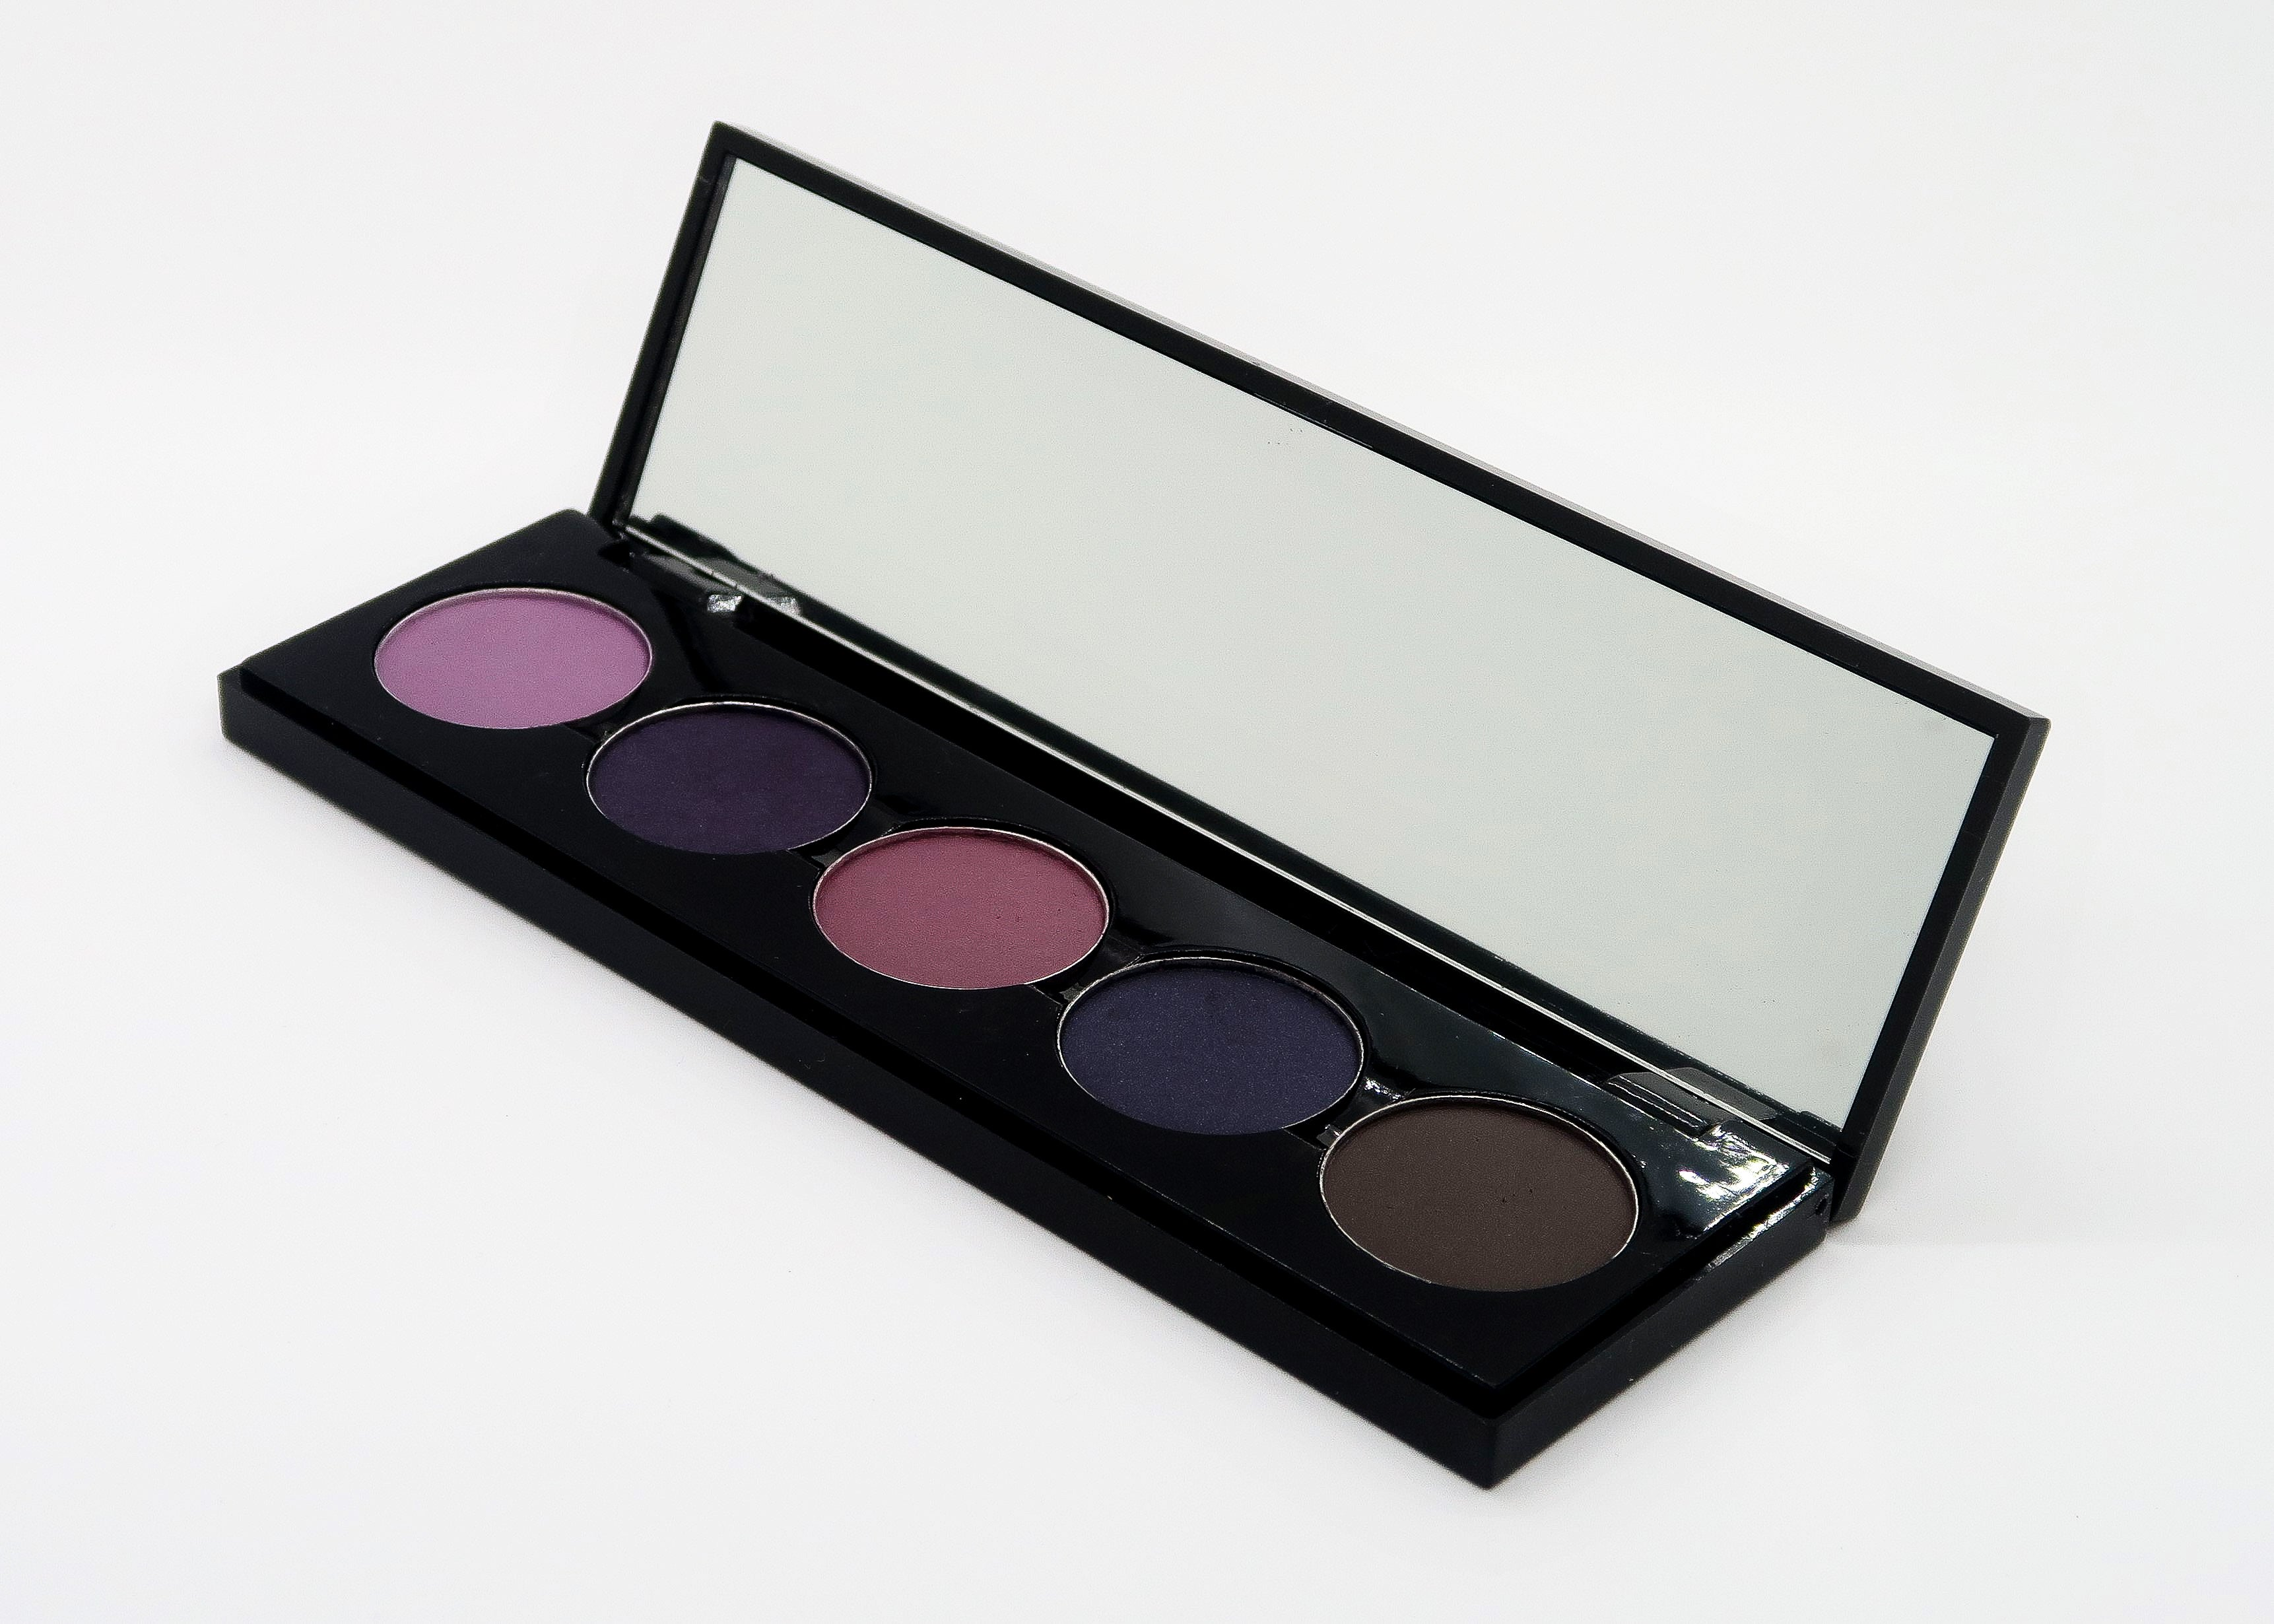 CAM Cosmetics 5 Shade Shadow Palette